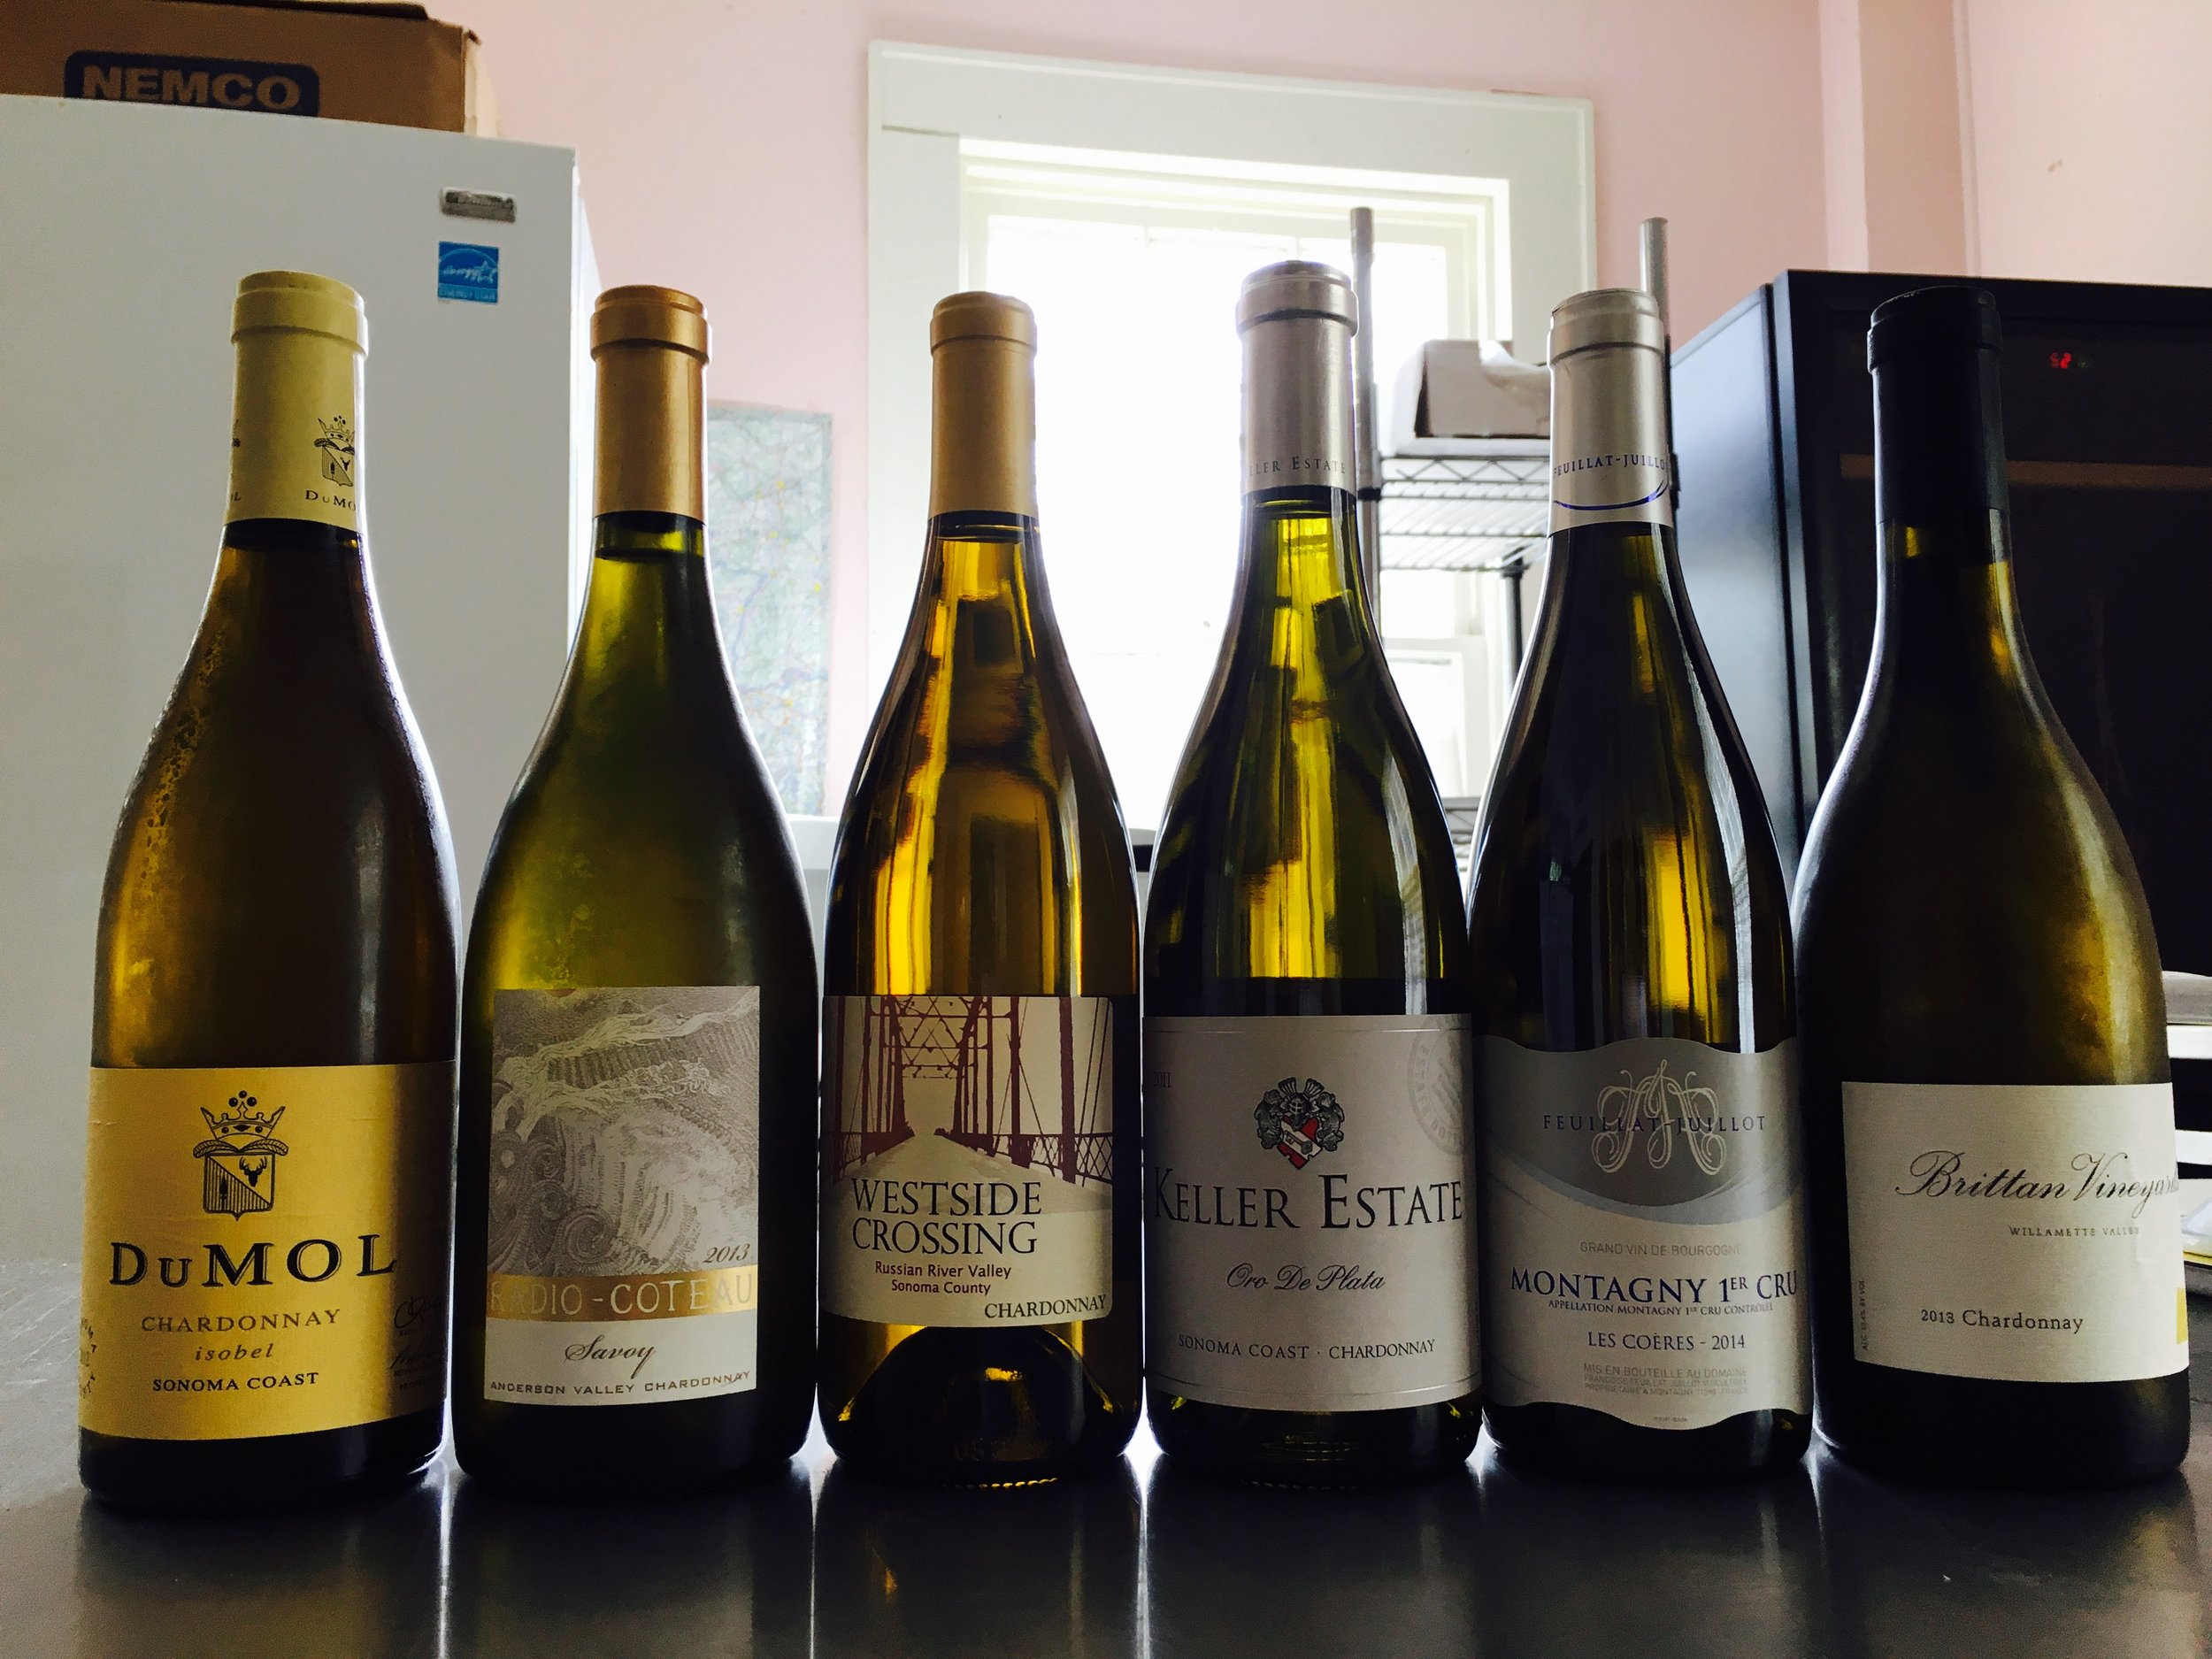 Another fun and casual evening, this time tasting 6 fabulous Chardonnays. Do you like your Chardonnay oaky and buttery or super smooth balanced? Snacks and Wine Tasting/Drinking  Friday March 24th, 5:30pm, $60 pp   for reservations:  alice@bartlettpearinn.com